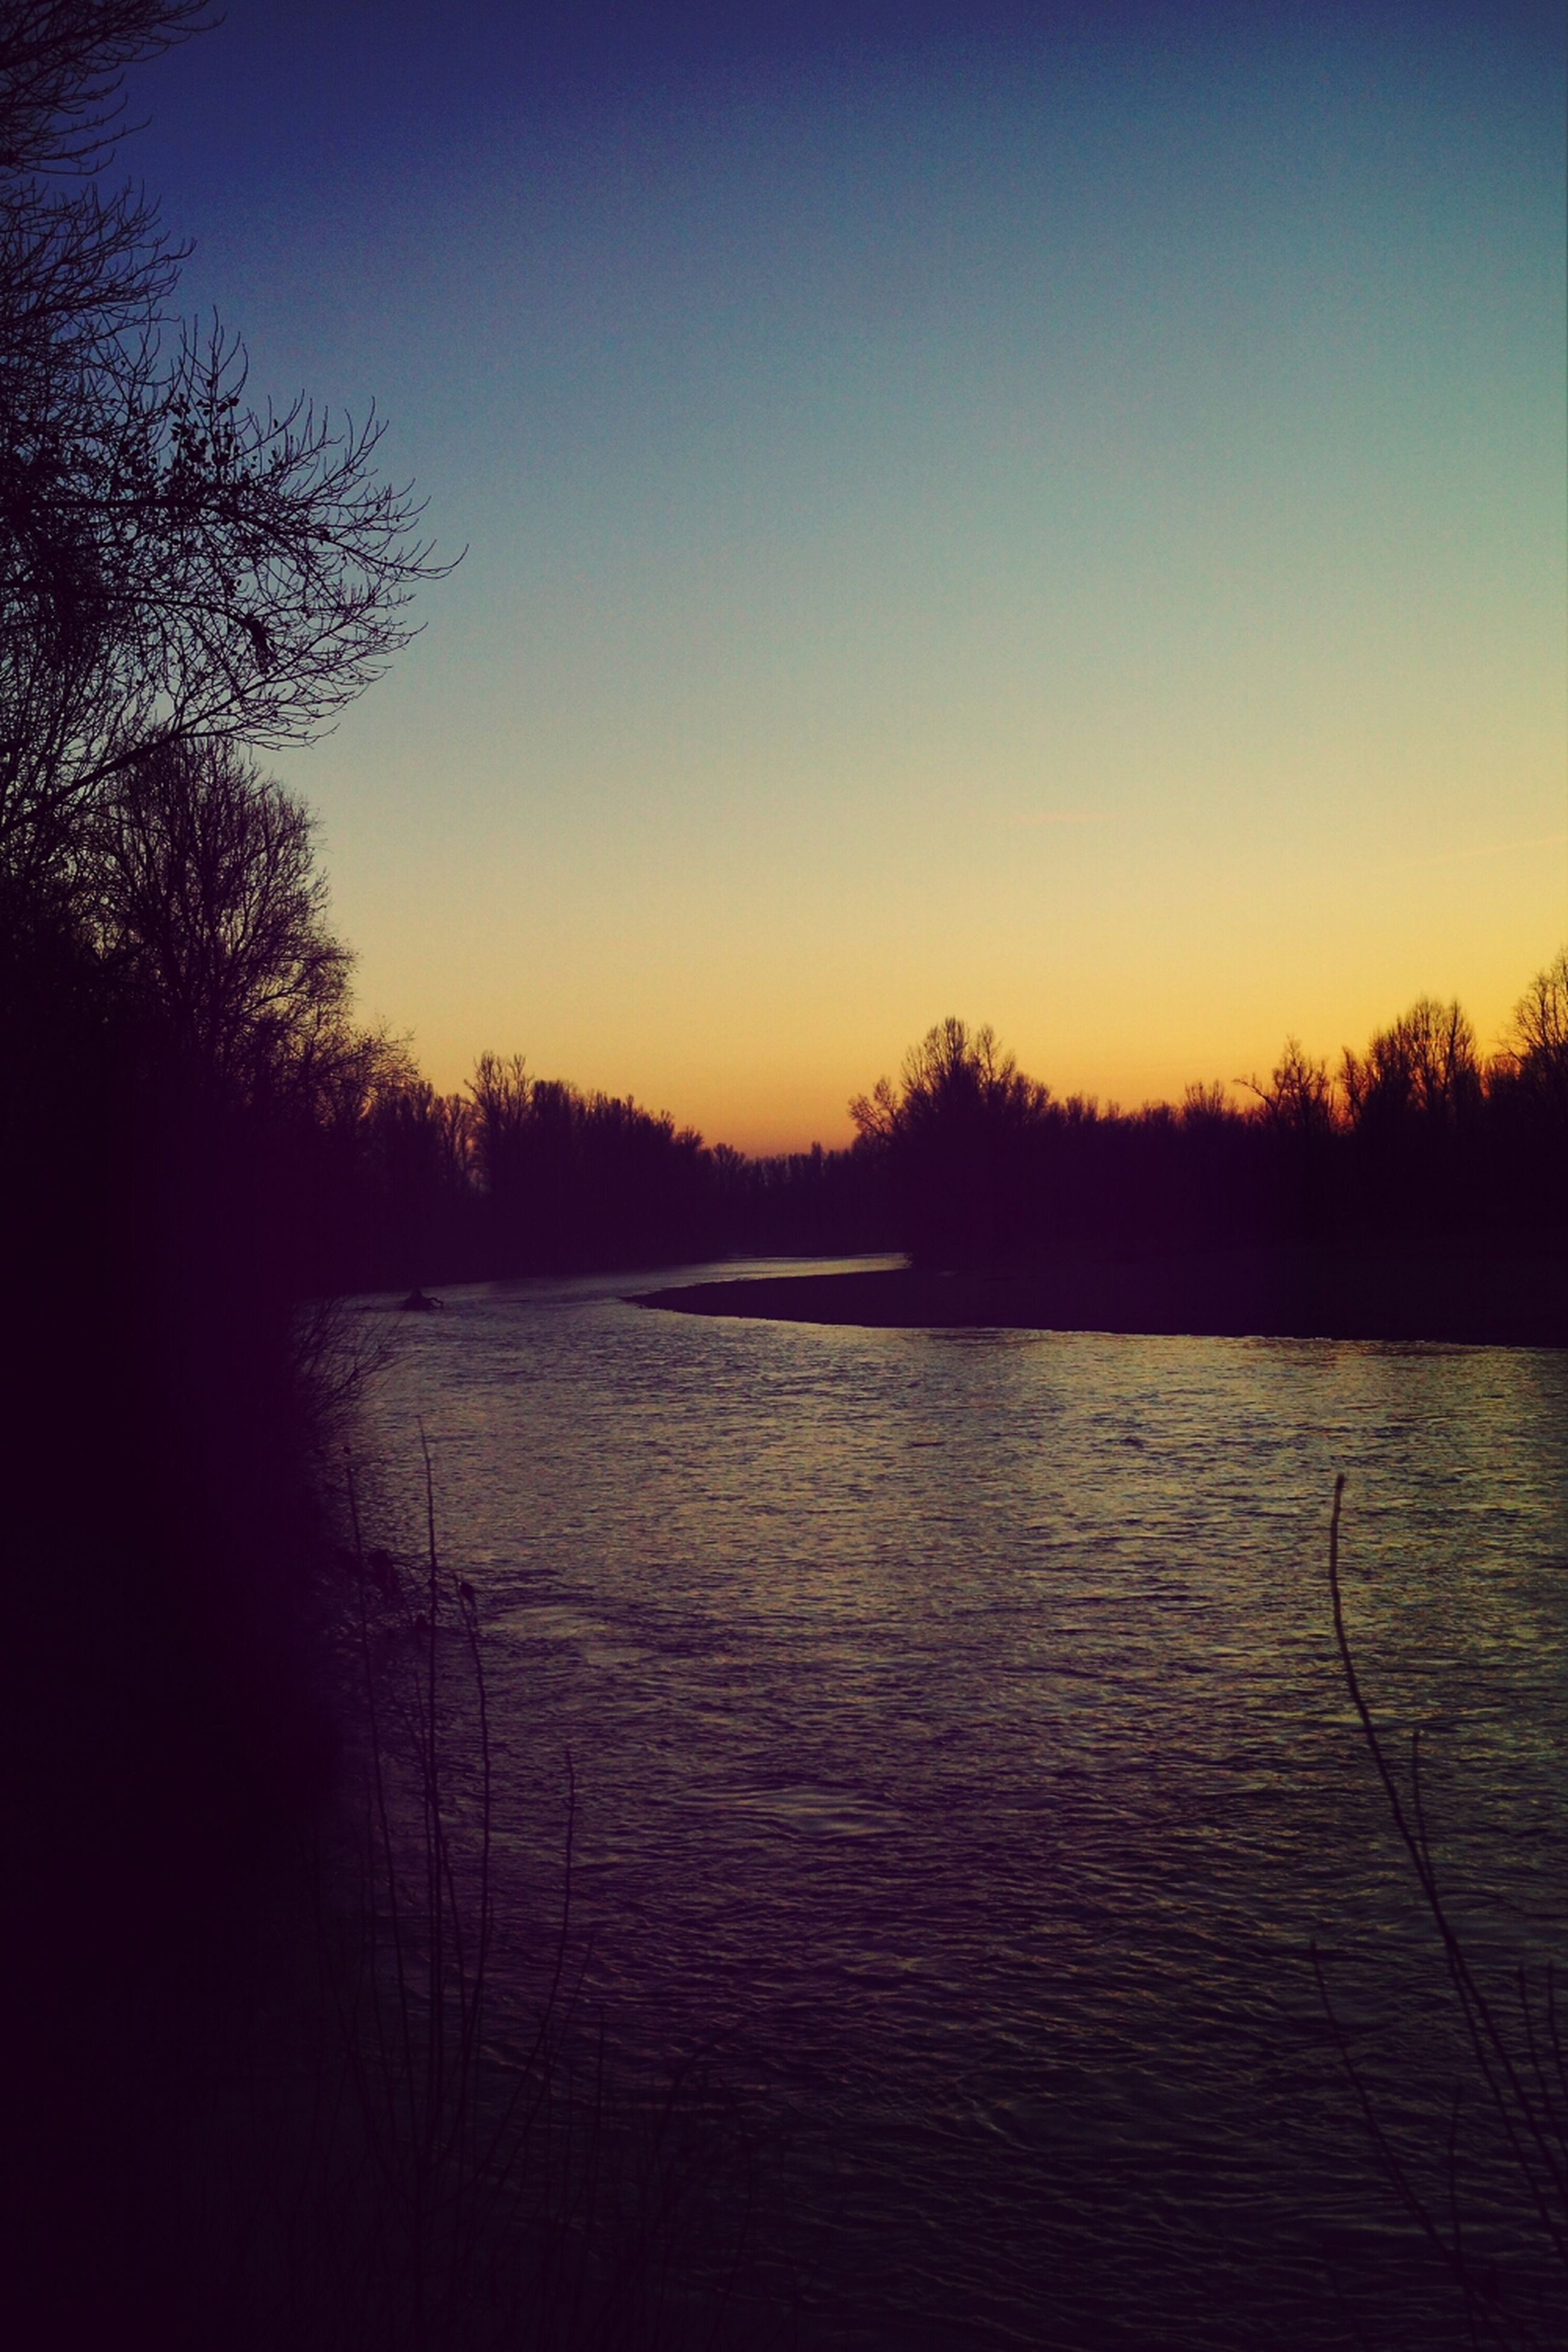 sunset, tranquil scene, tranquility, scenics, tree, silhouette, beauty in nature, lake, water, nature, clear sky, orange color, idyllic, reflection, copy space, bare tree, sky, dusk, river, landscape